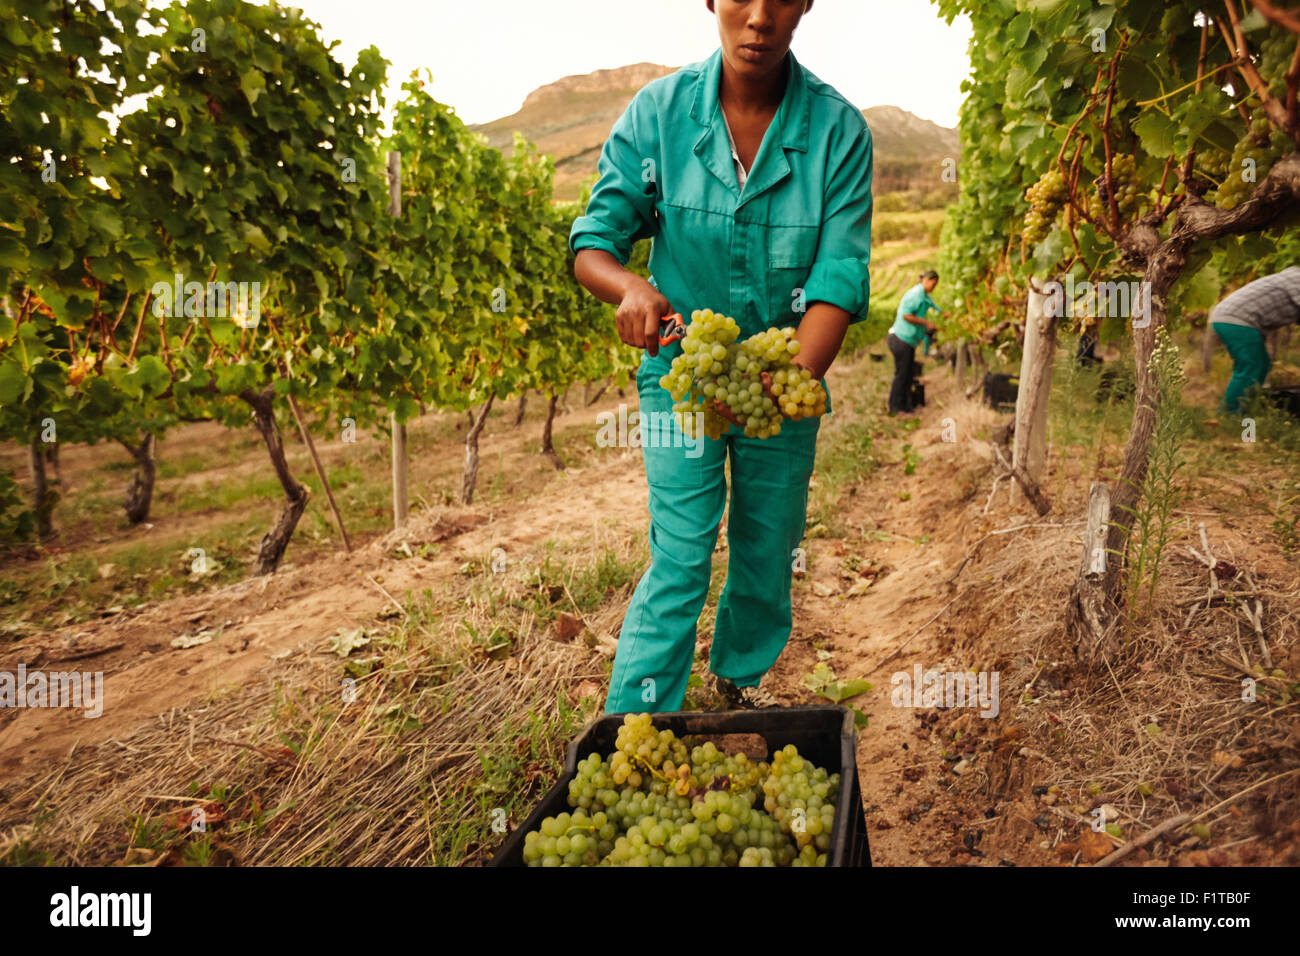 Women harvesting grapes in vineyard, Farmer putting bunch of grapes into a plastic crate in farm. - Stock Image